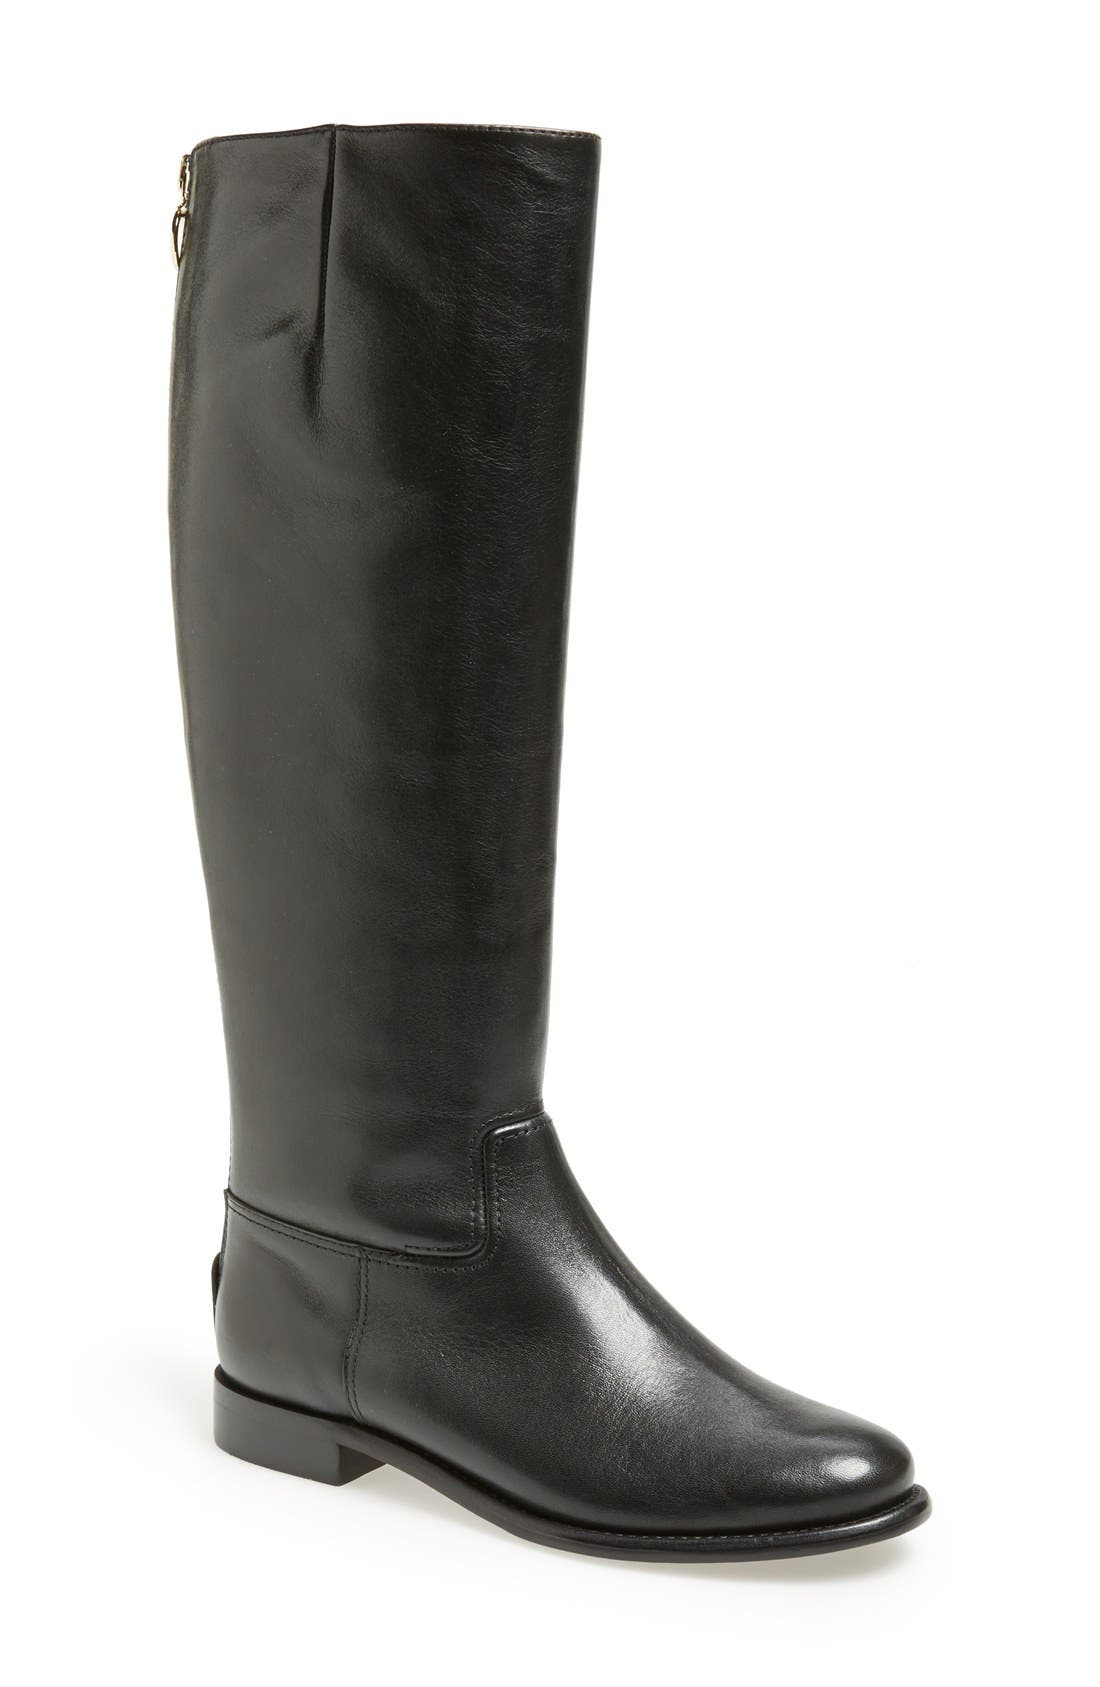 Alternate Image 1 Selected - Diane von Furstenberg 'Ranger' Tall Boot (Women)